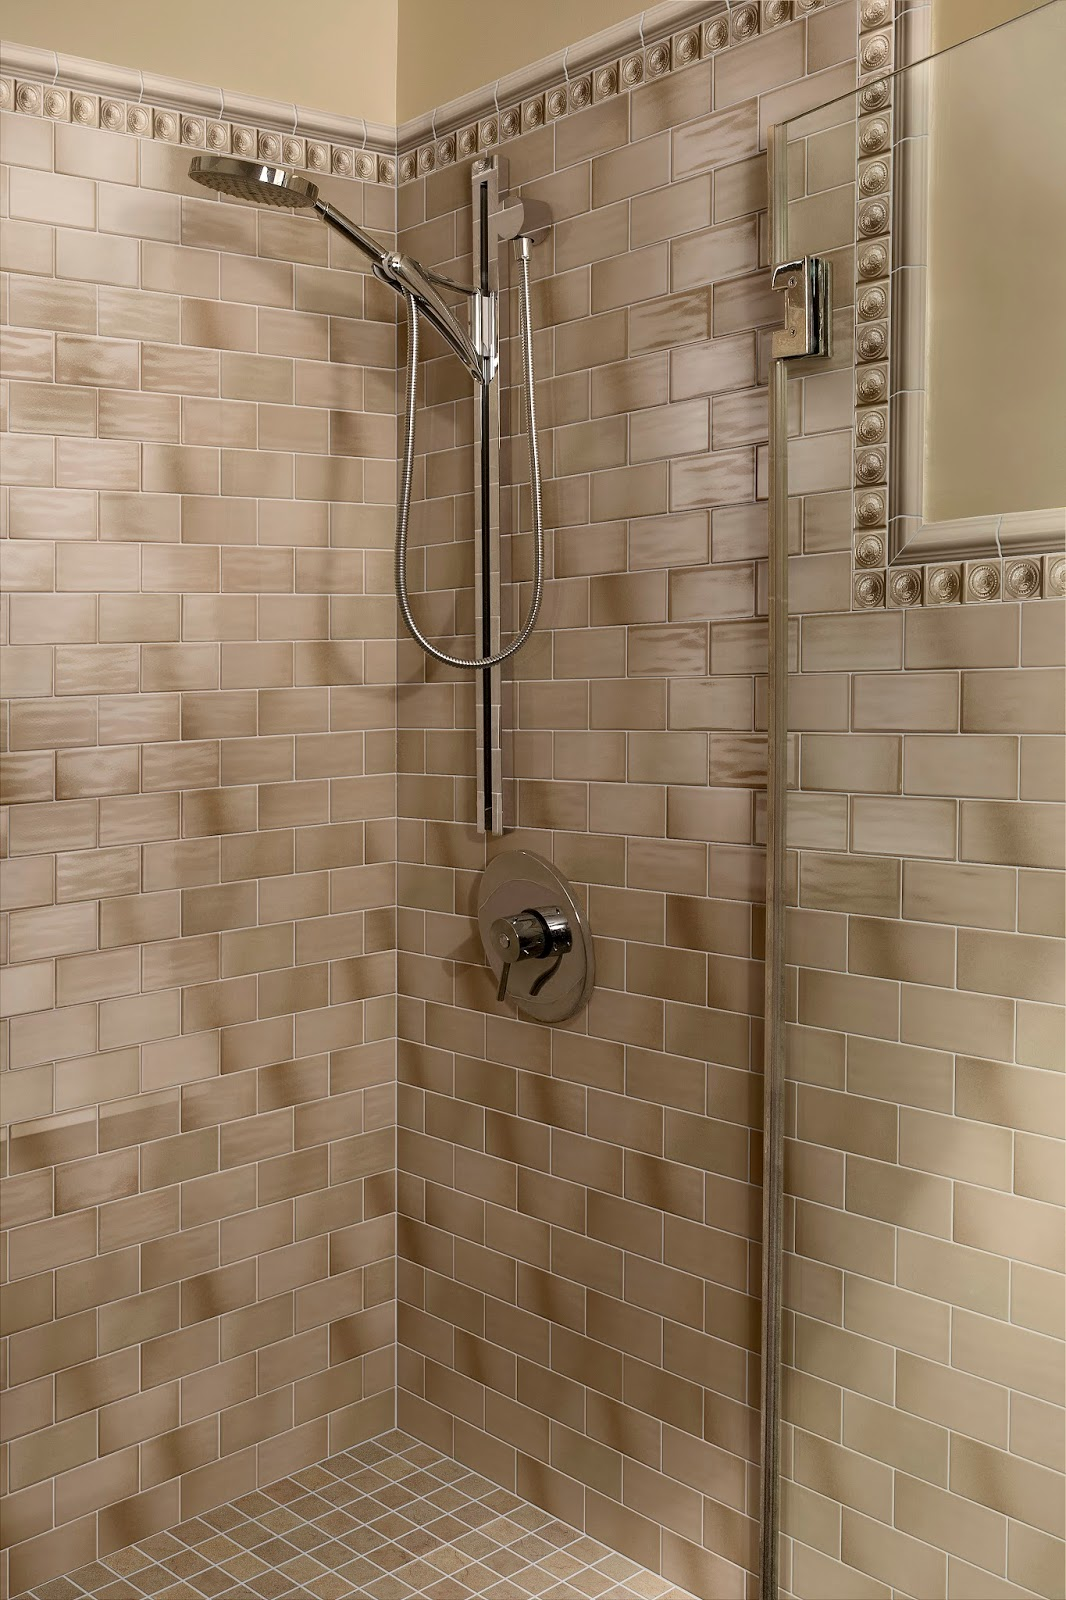 Isc surfaces great looks beyond the subway tile part 2 great looks beyond the subway tile part 2 dailygadgetfo Choice Image